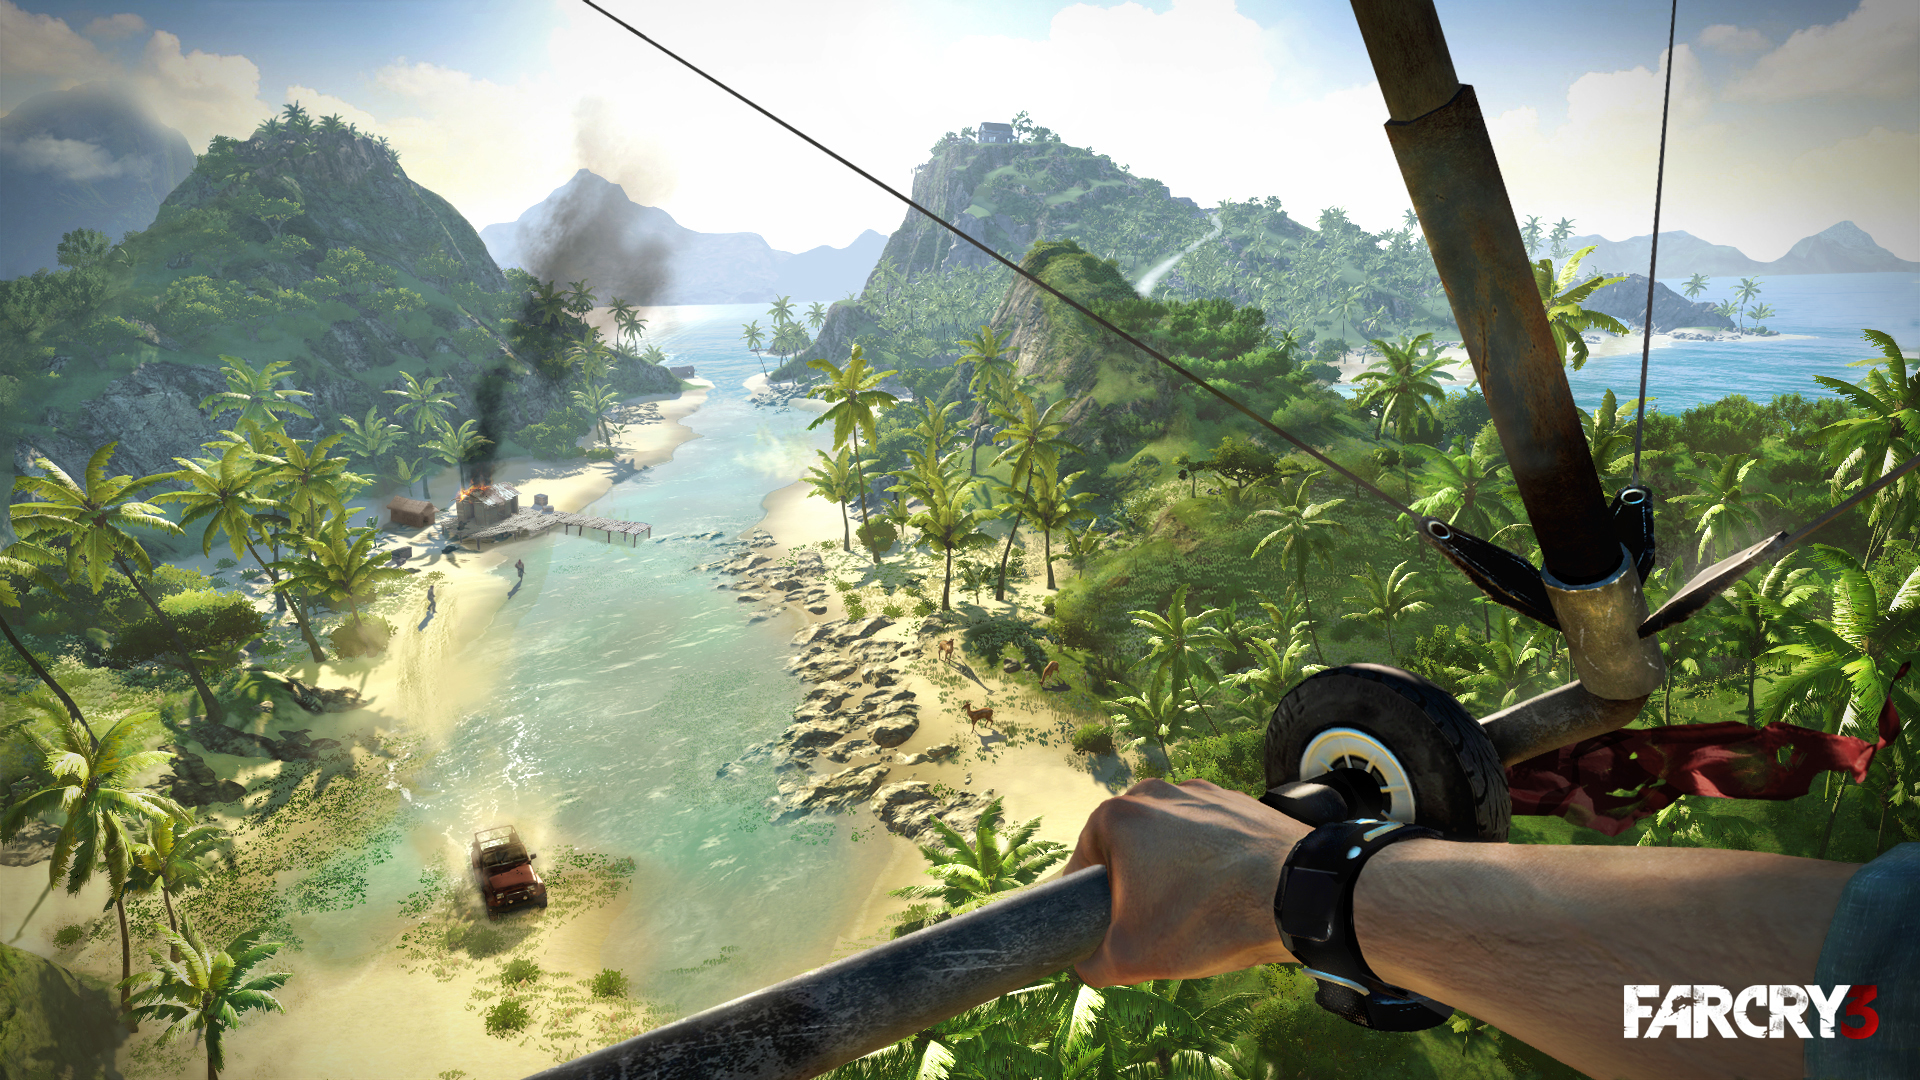 Far Cry 3 Pc Patch Fixes Bugs And Adds Hud Customization